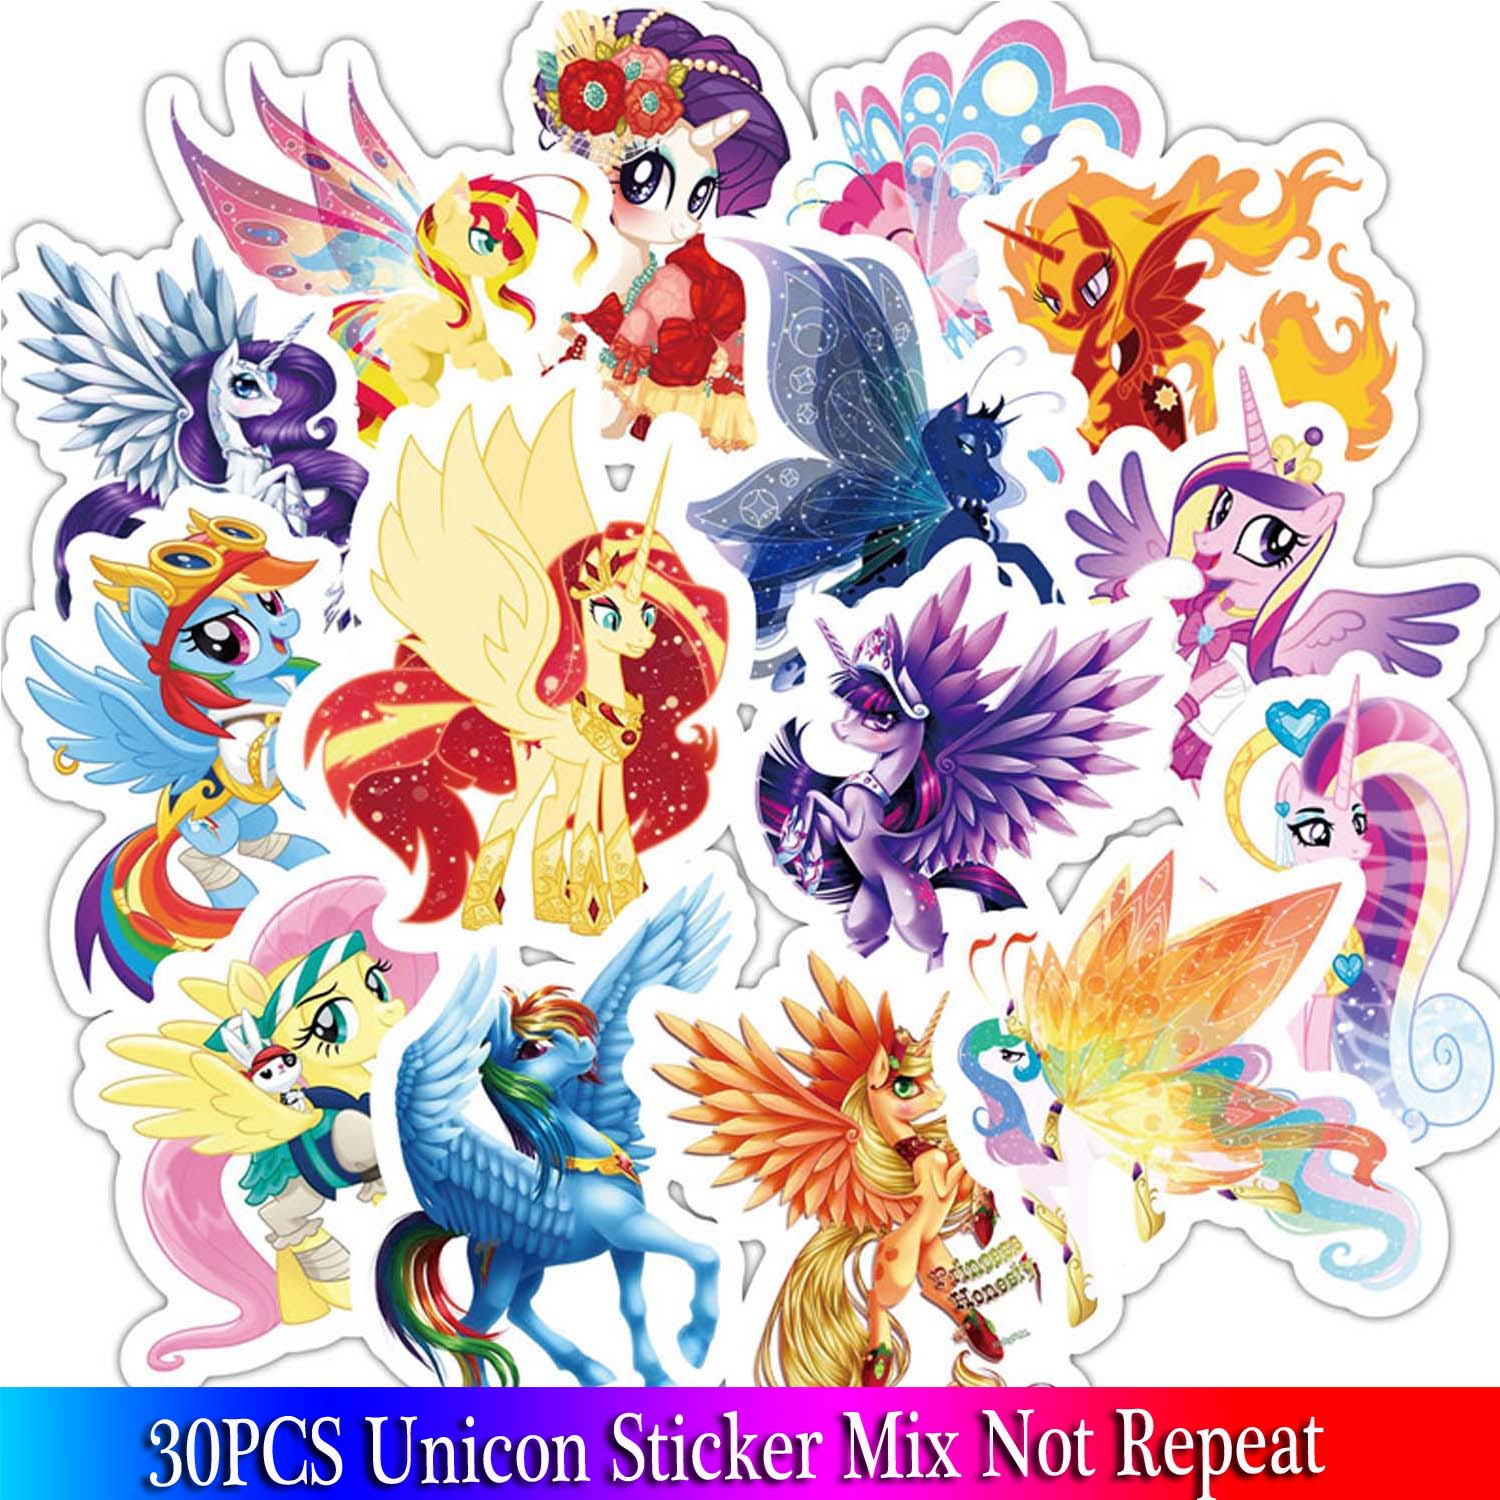 31PCS Prince Unicorn Series Stickers Set For Children Travel Case Bicycle Fridge Laptop Cute Cartoon Sticker Little Pony Sticker